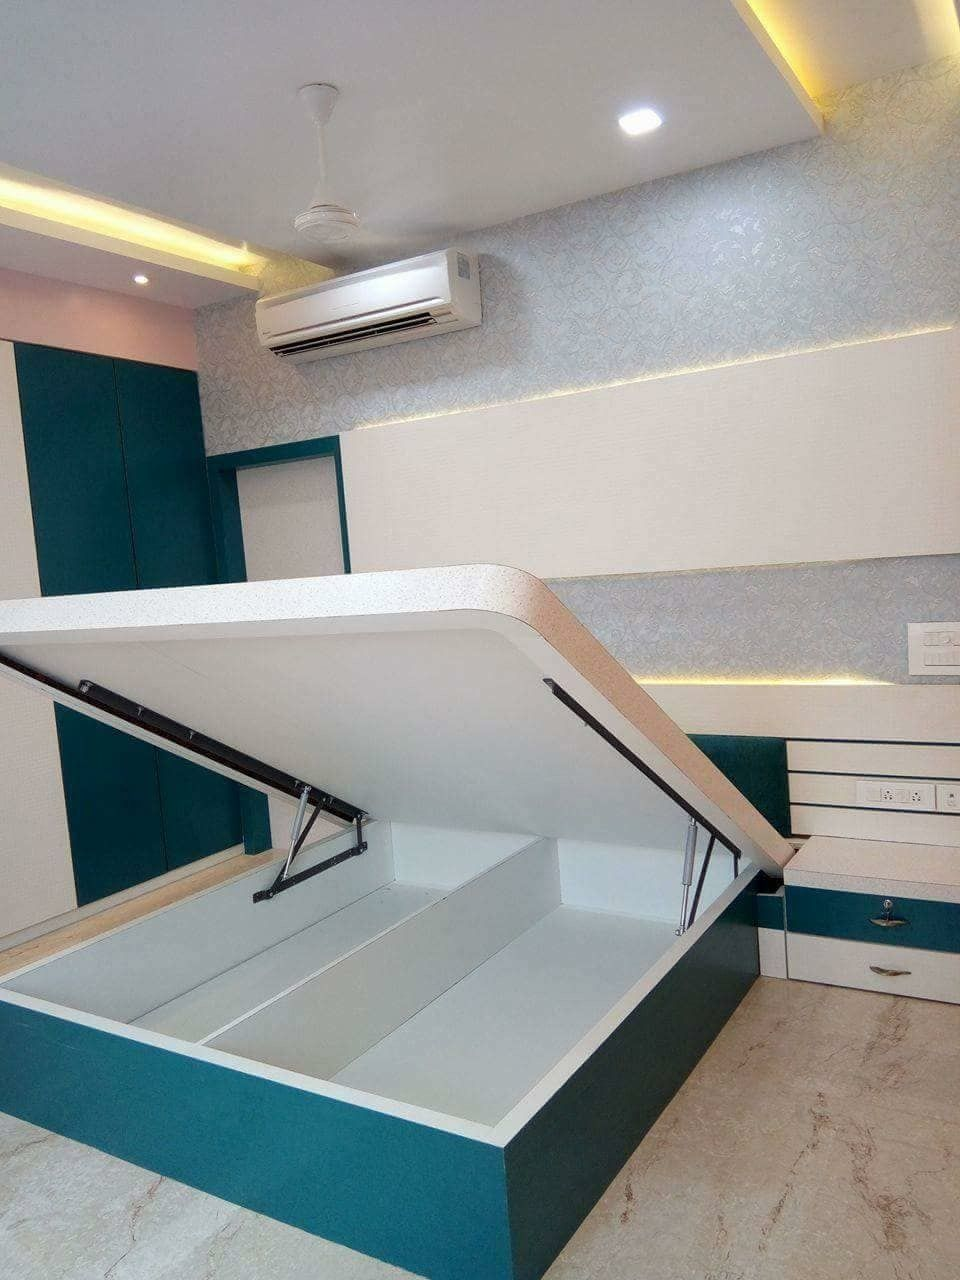 Kids Room False Ceiling Design: Tow Bed Kids 30000 Karan Jangid Salvabrani Bedroom In 2020